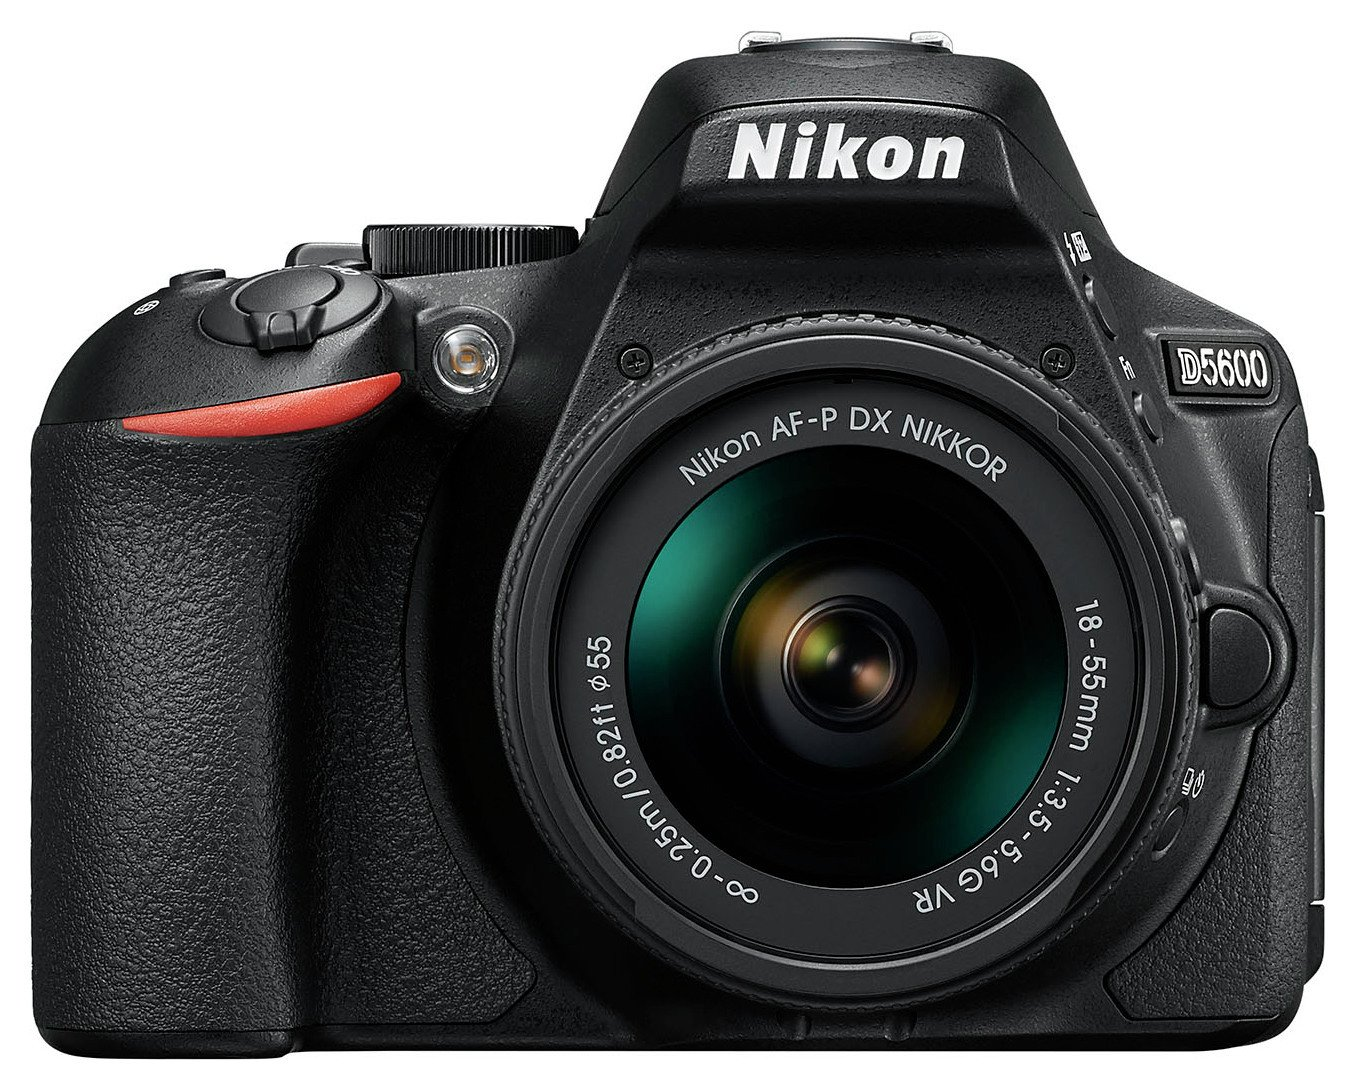 Nikon - Digital SLR Camera - D5600 - 18-55mm VR Lens.